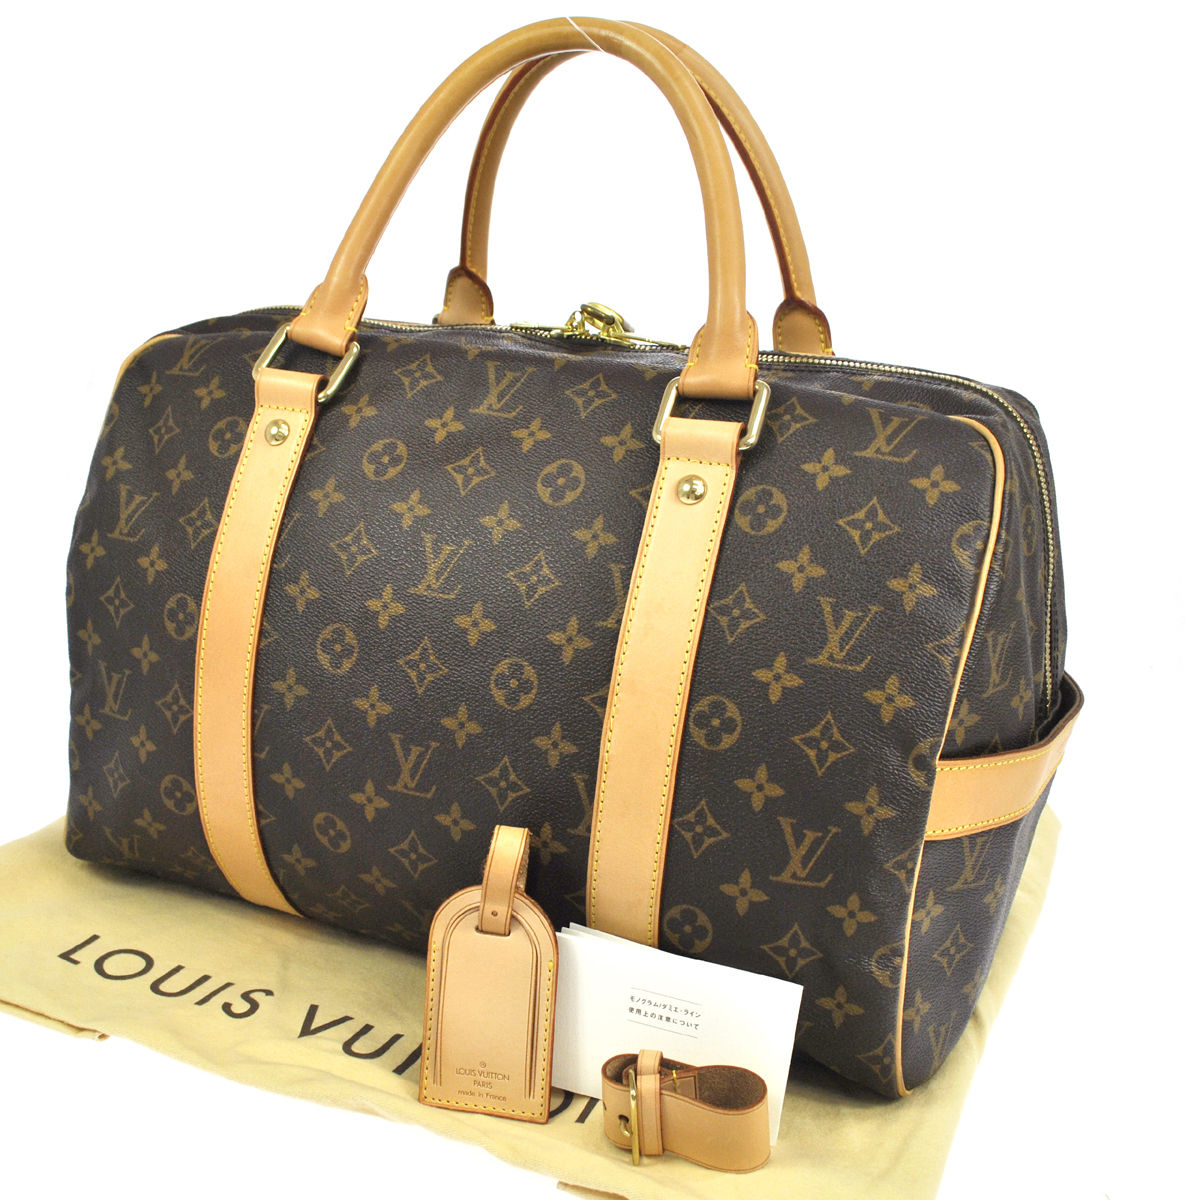 louis vuitton monogram canvas carryall weekend travel bag my frugal fashionista. Black Bedroom Furniture Sets. Home Design Ideas